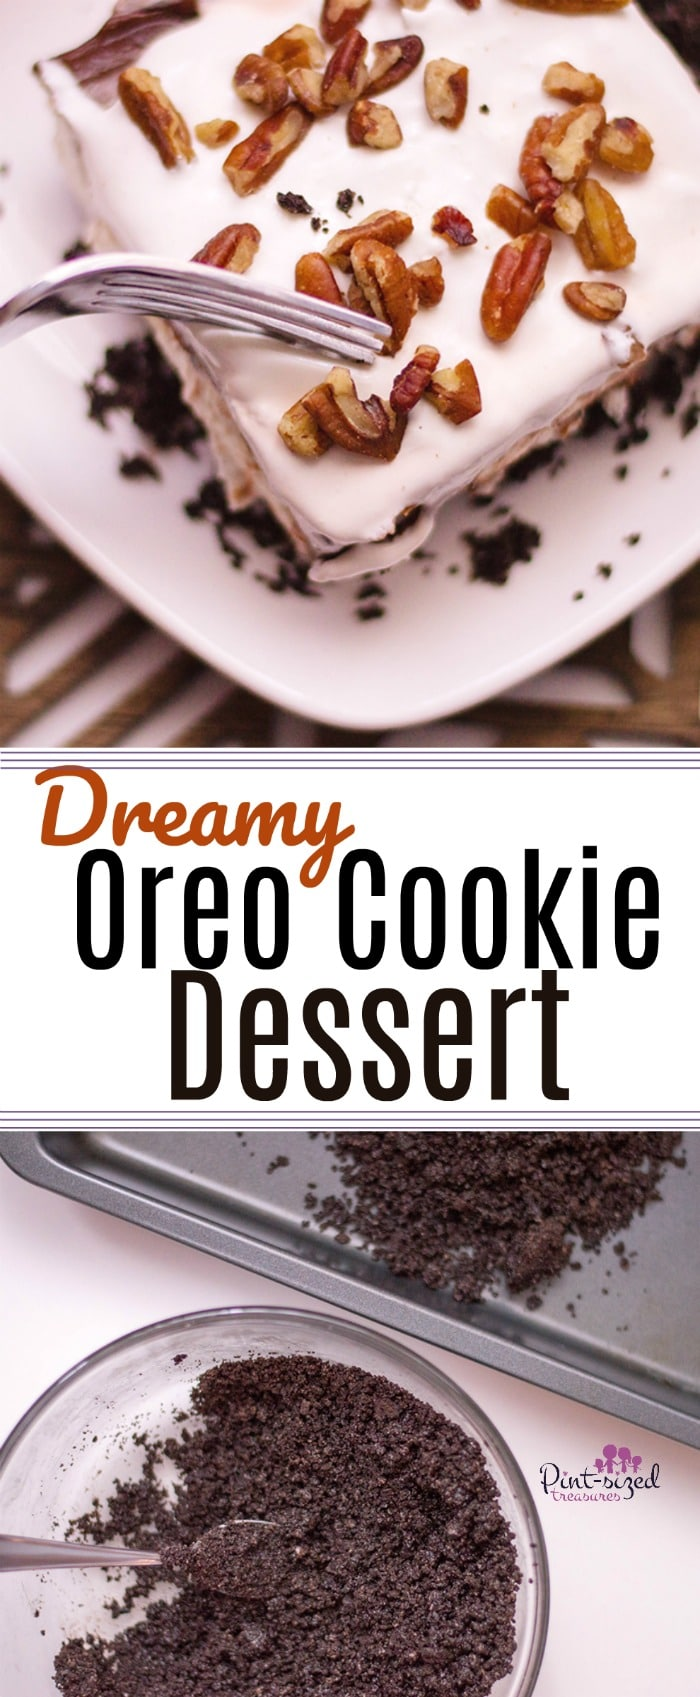 This dreamy, Oreo Cookie dessert is one of our family's absolutely favorites! There is no whipped topping in this recipe --- only homemade whipped cream will do! Crumbled, buttery Oreo cookies and layers of pudding and cream cheese, create a gorgeous, easy dessert that's topped with crunchy, toasted walnuts! Enjoy! #easyrecipes #Oreodesserts #oreodessert #Chocolatedessert #easychocolatedessert #nobakedessert #nobakeOreodessert #nobakechocolatedessert #quickandeasydessert #Oreodelight #Oreolasagna